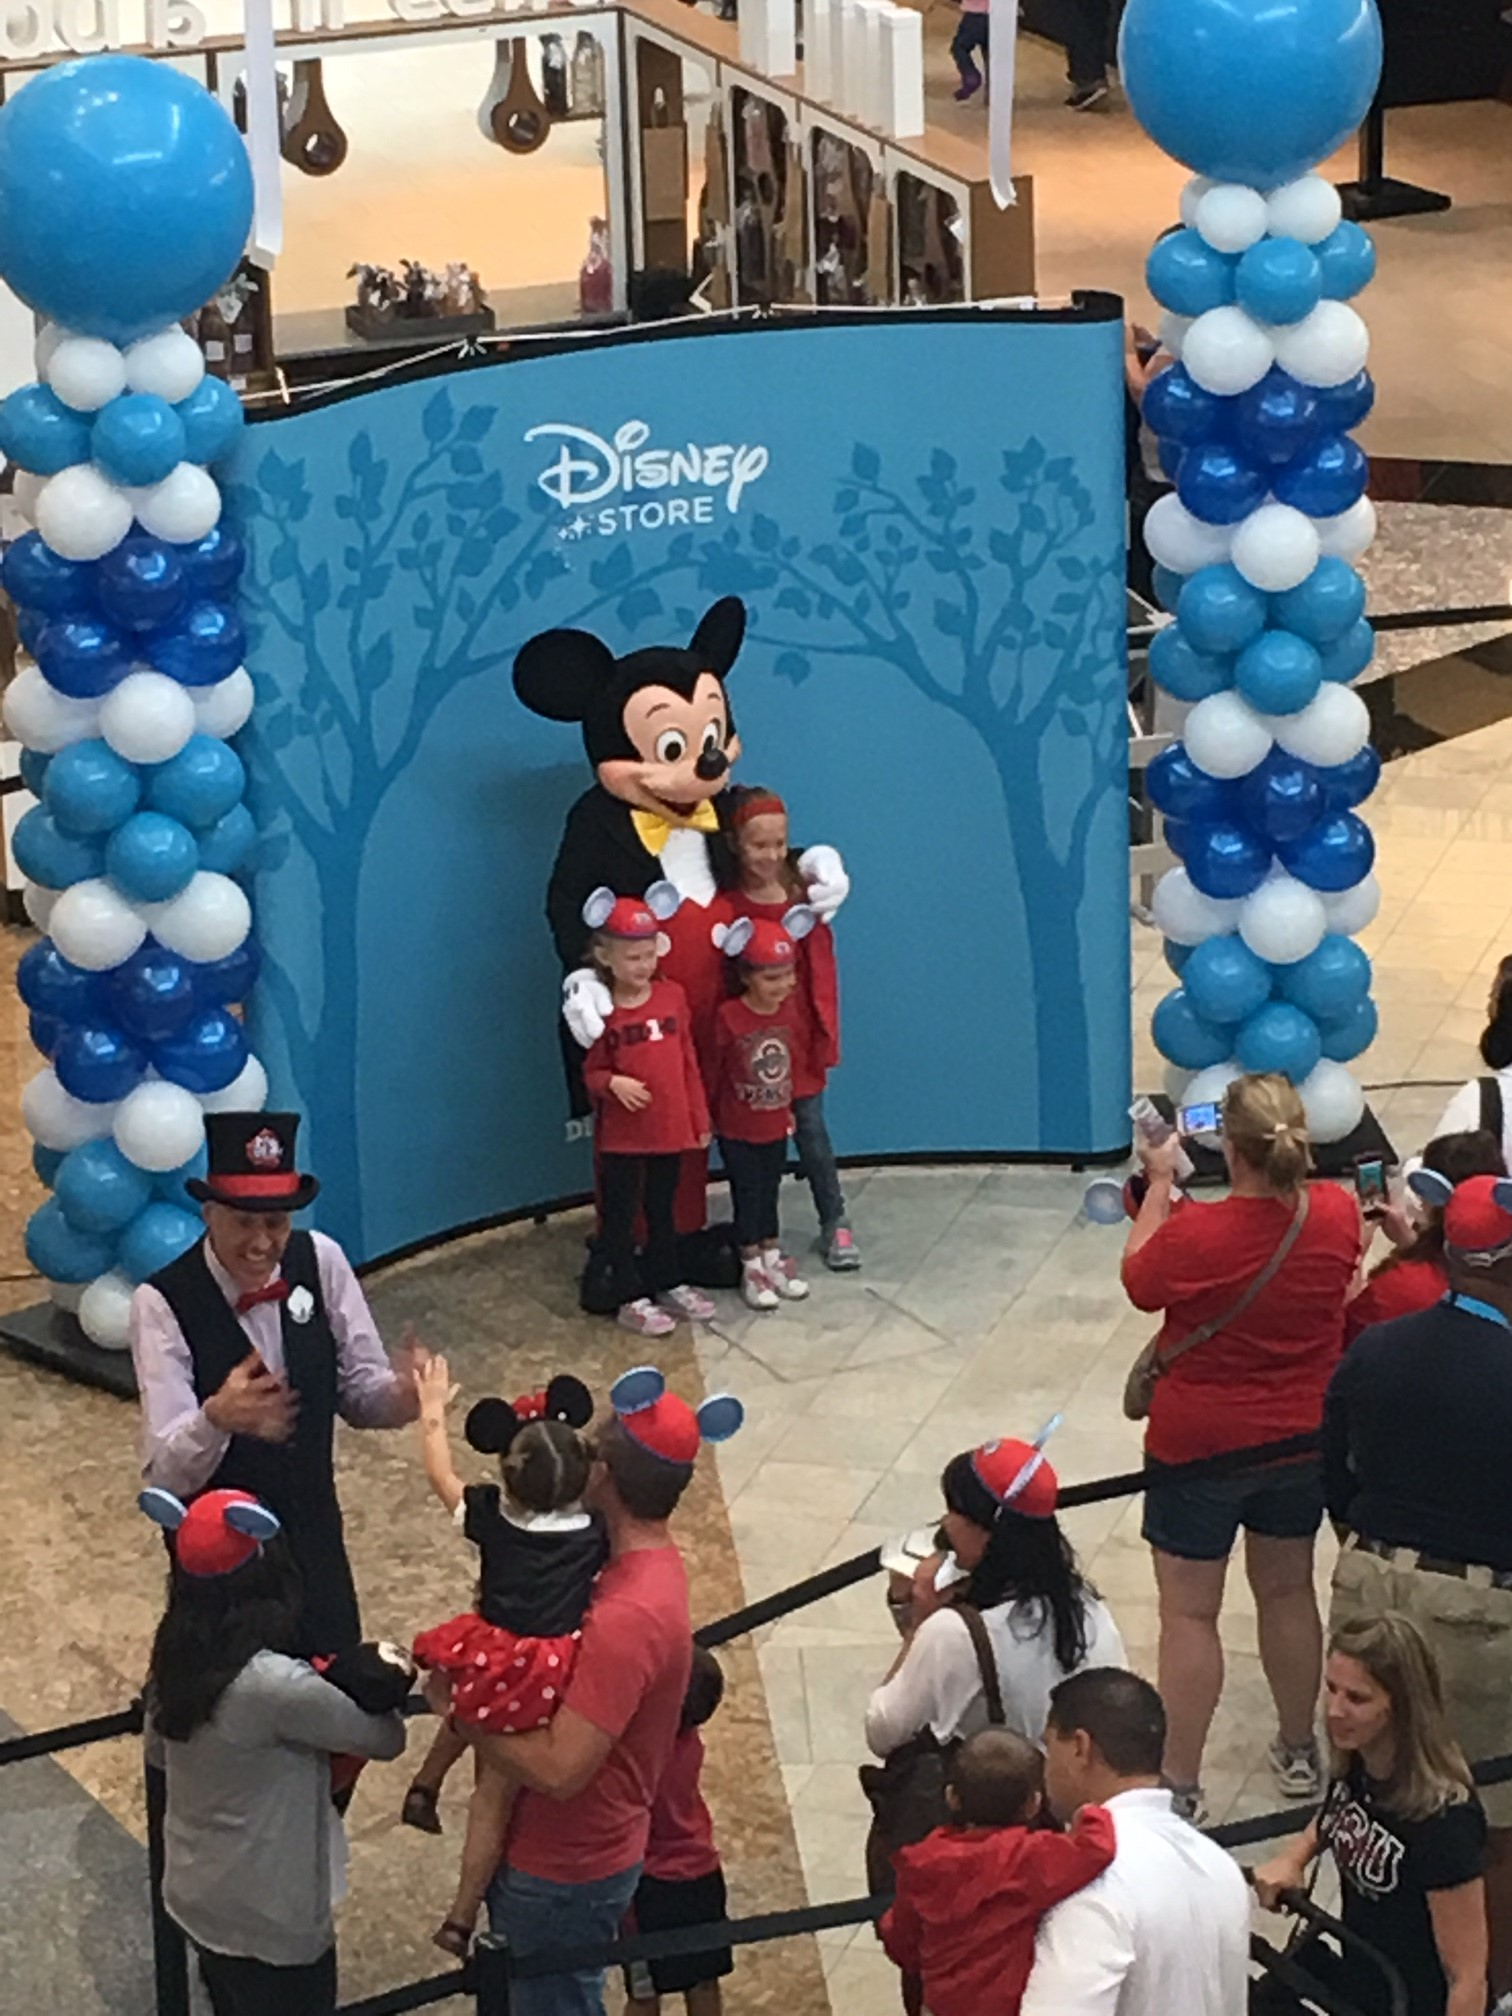 Grand Opening of the Disney Store at Polaris Fashion Place